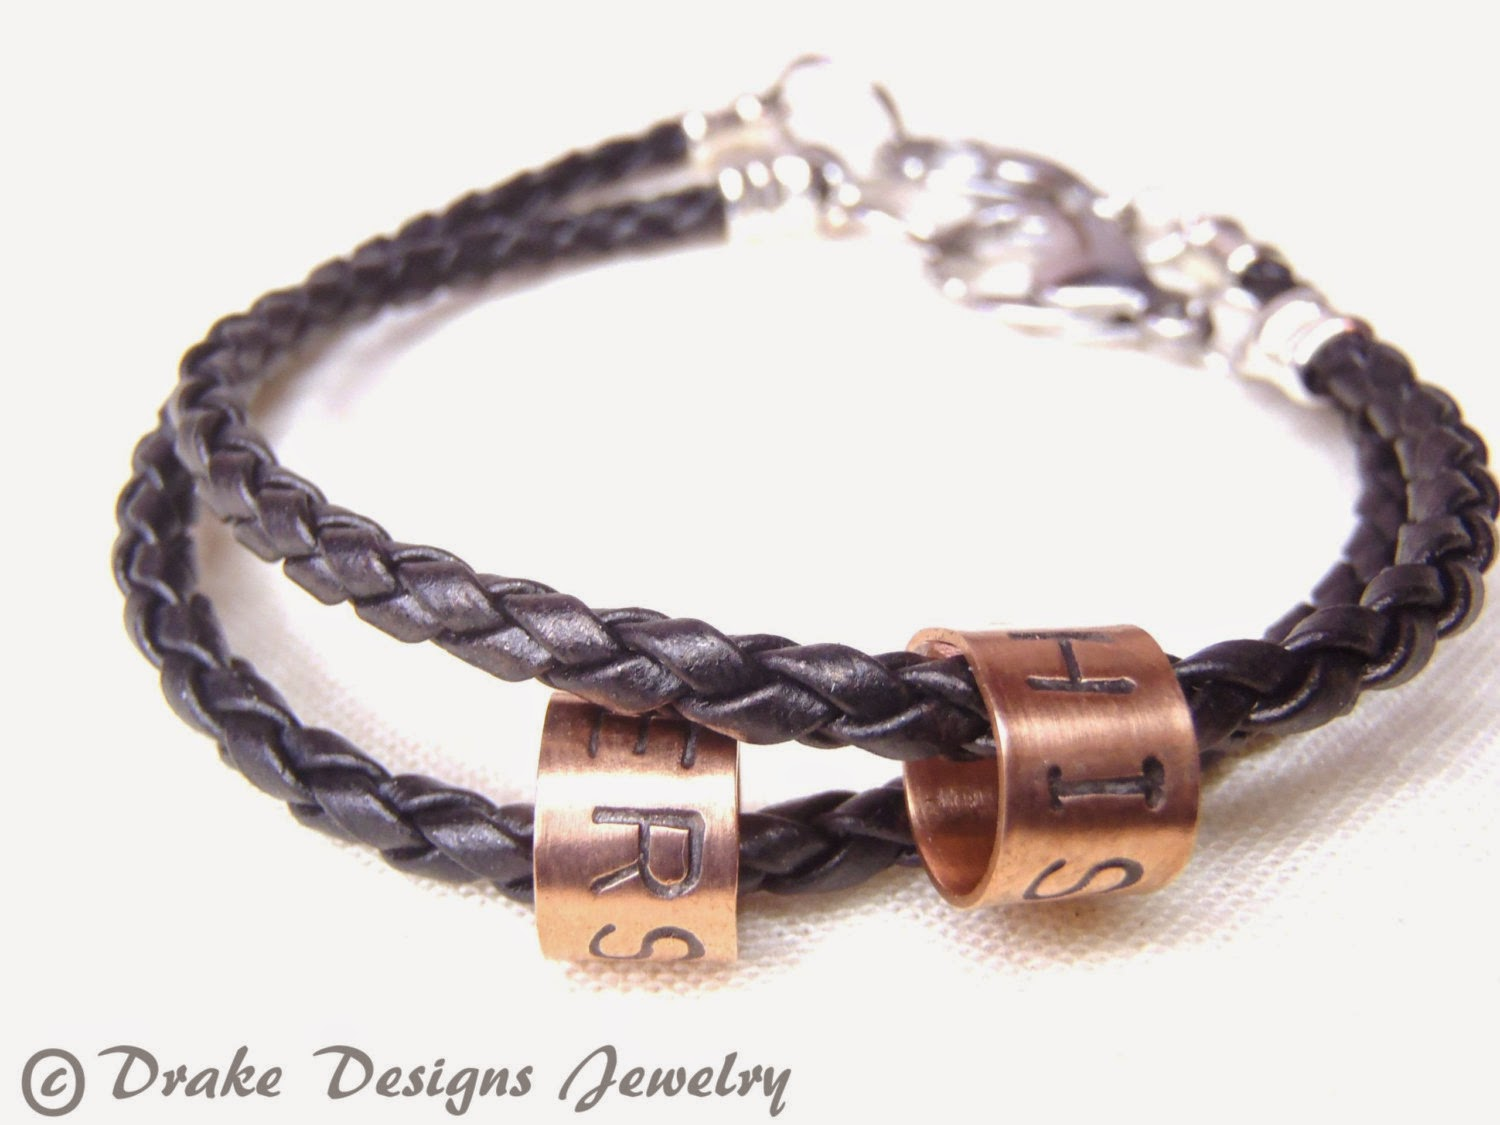 Cute Bracelets For Couples - dashingamrit